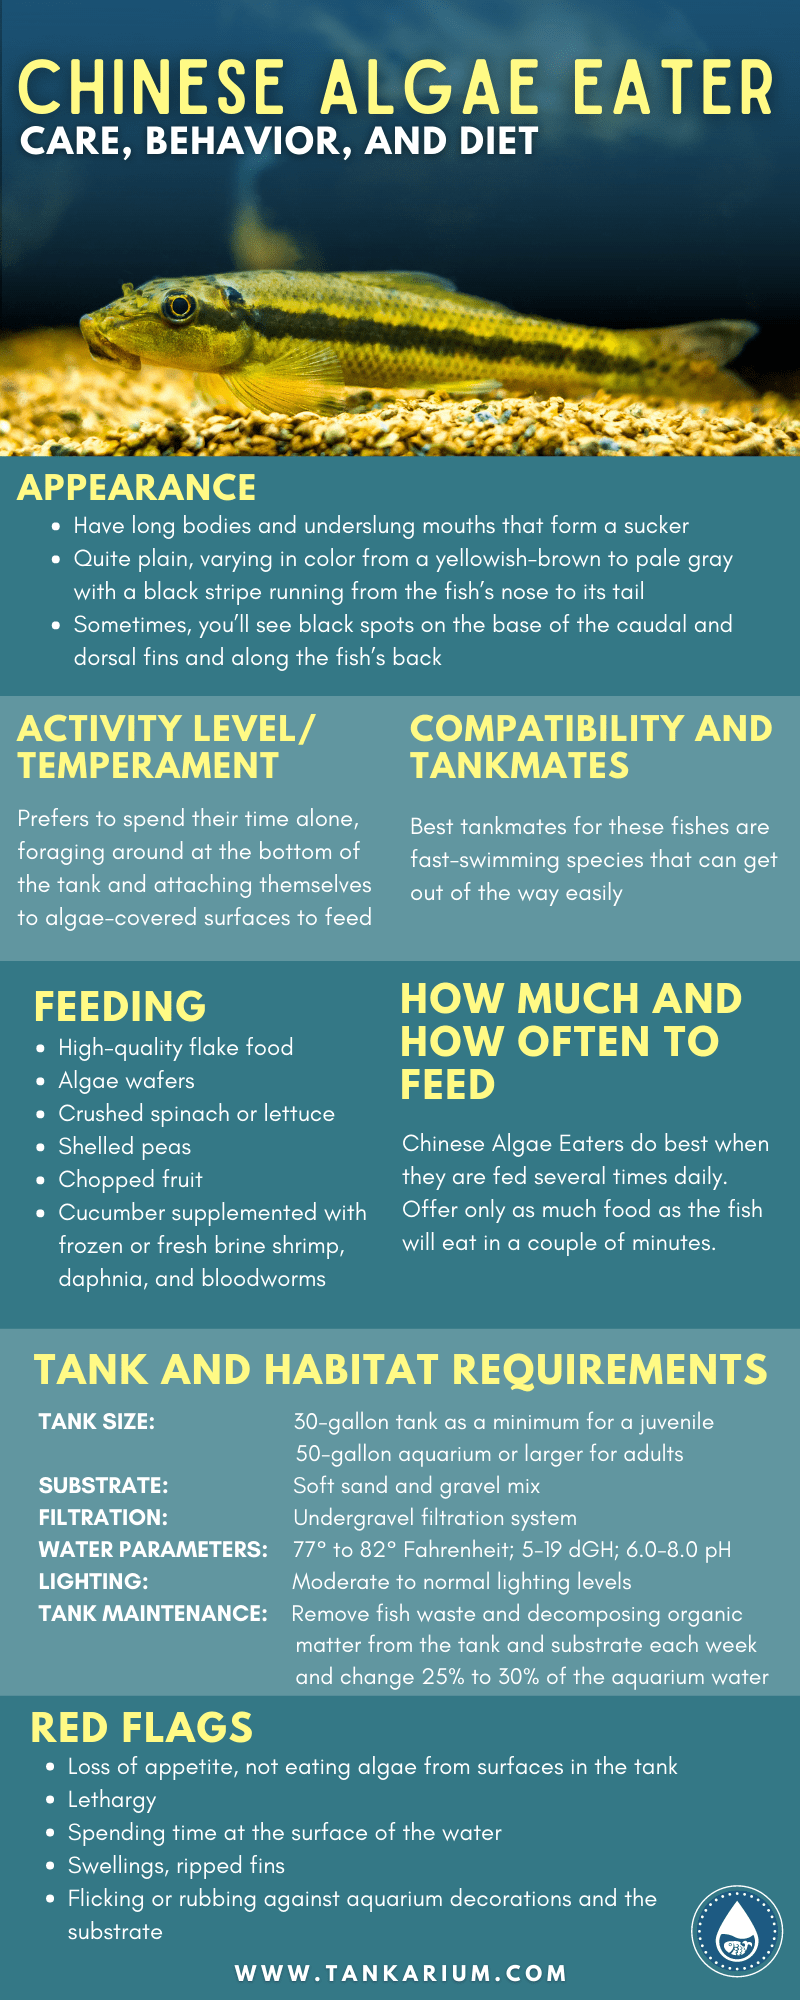 Chinese Algae Eater Care, Behavior, and Diet -infographics